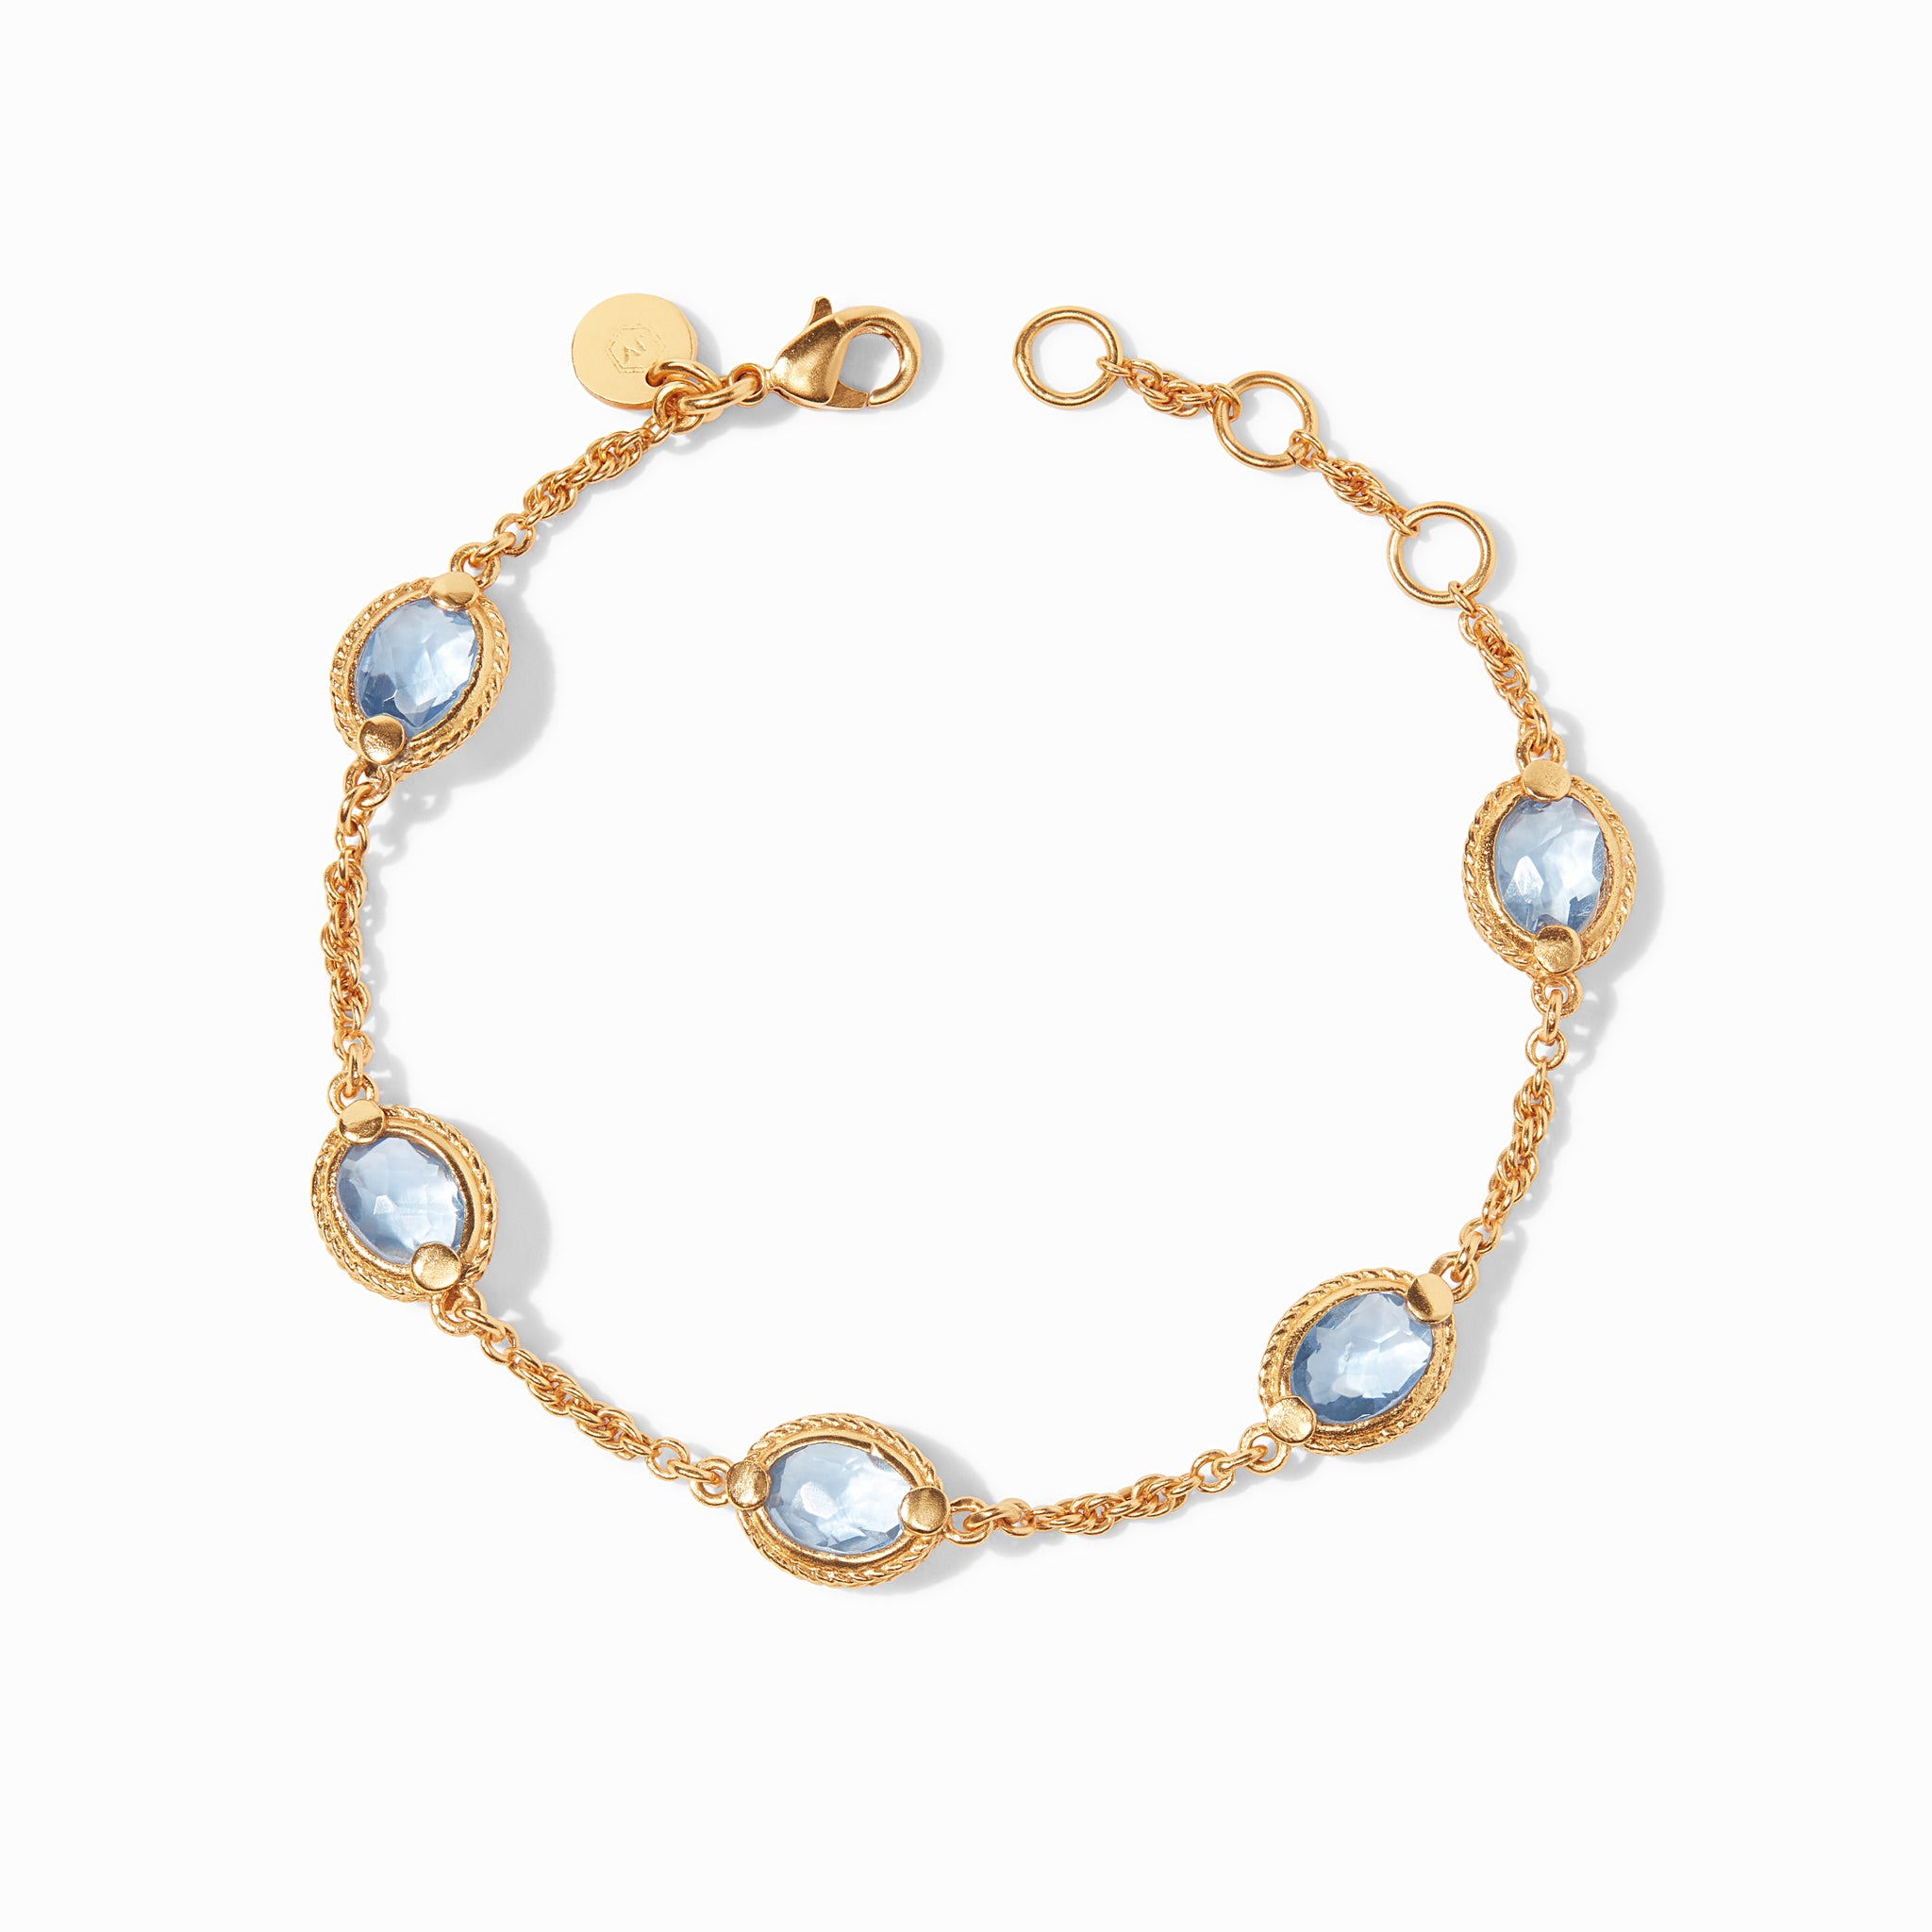 Chalcedony Blue, mothers day, long weekend look, arm party, classics